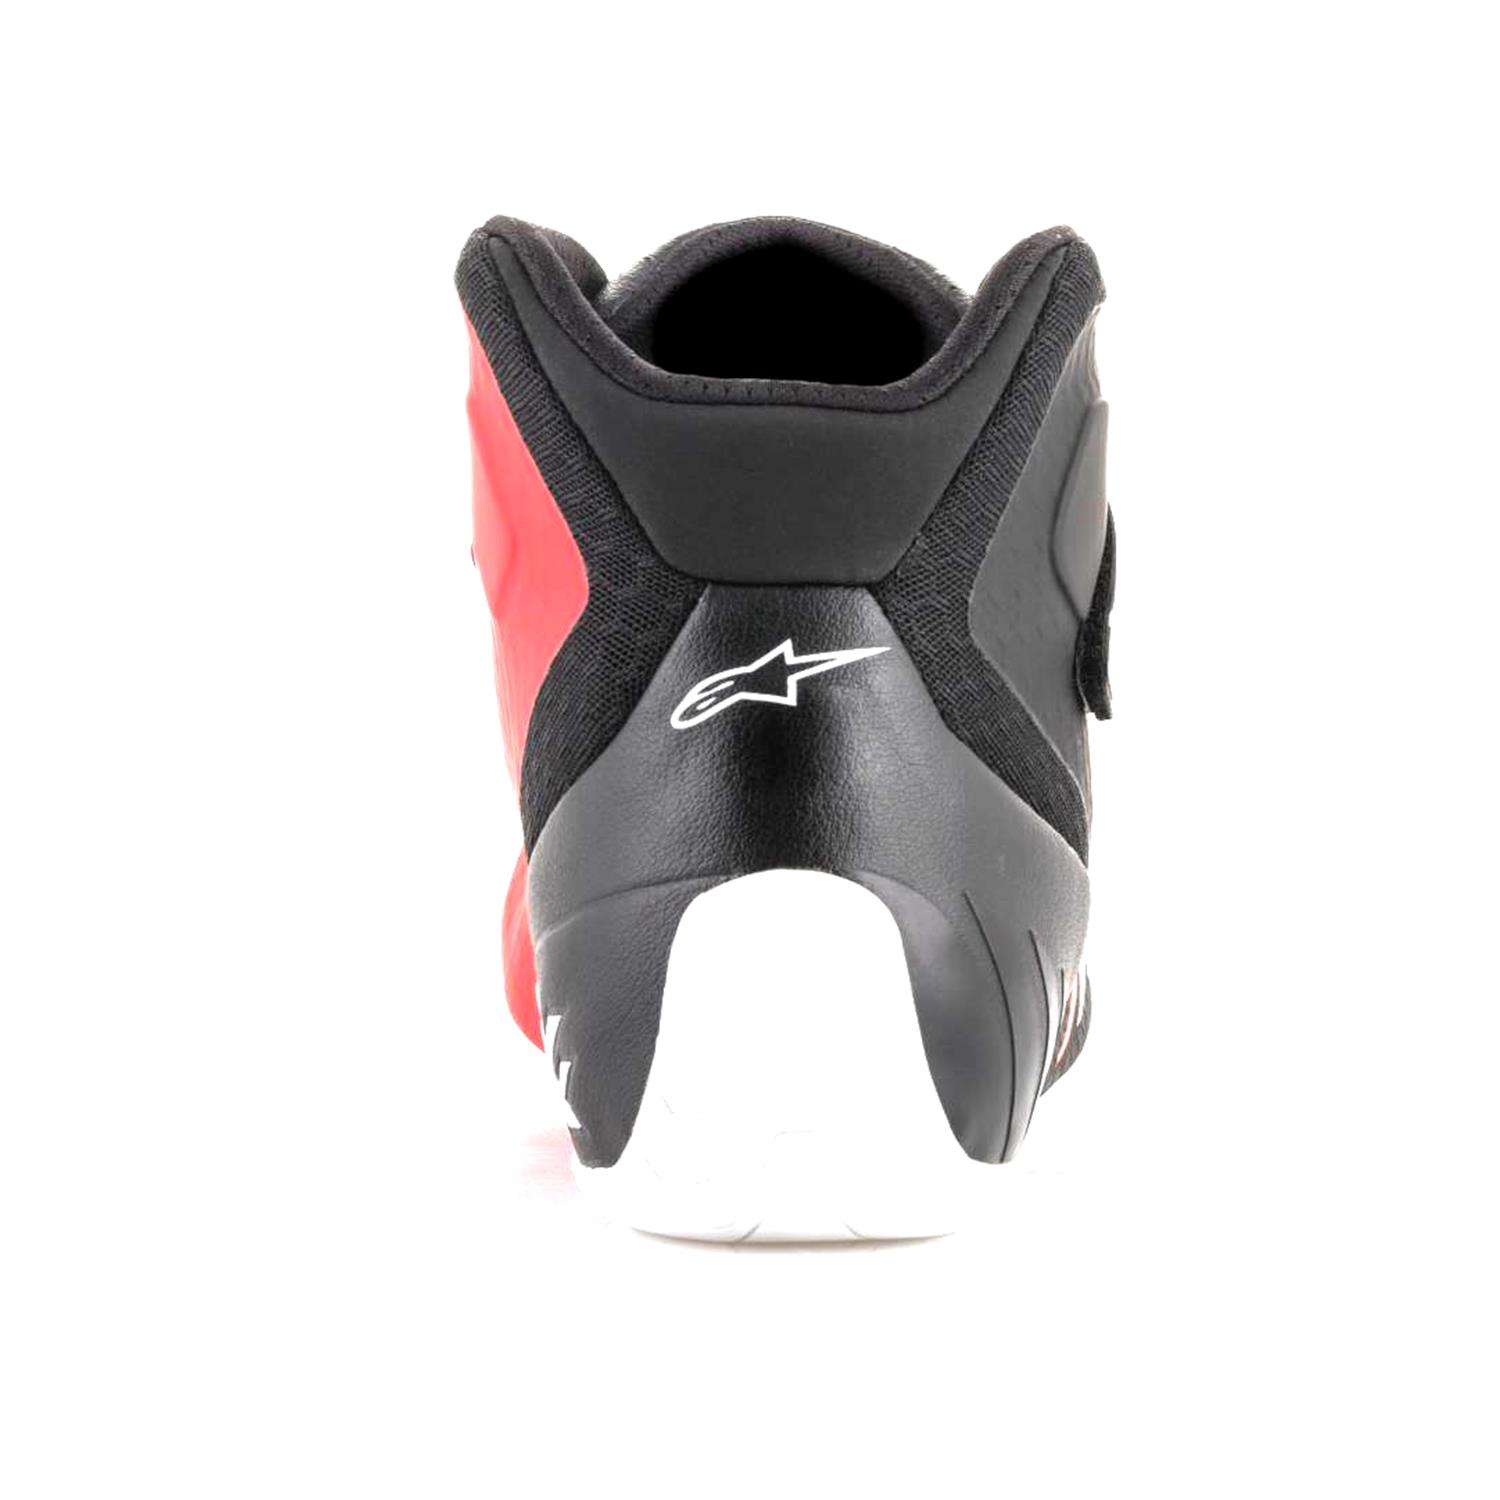 The Karting shoe… - An alternative to buying the more expensive FIA or SFI rated race shoe is to buy a shoe designed for karting. They have the same profiles and characteristics of the race shoe minus the fire-retardant additions so are often lighter.Karting shoes are constructed for the unique, external demands and rigors of the sport. As a result they often use man-made materials, plus the manufacturers do not have to pay for the SFI, FIA certifications which reduces the cost of the shoe.Remember - they are not fire-retardant!